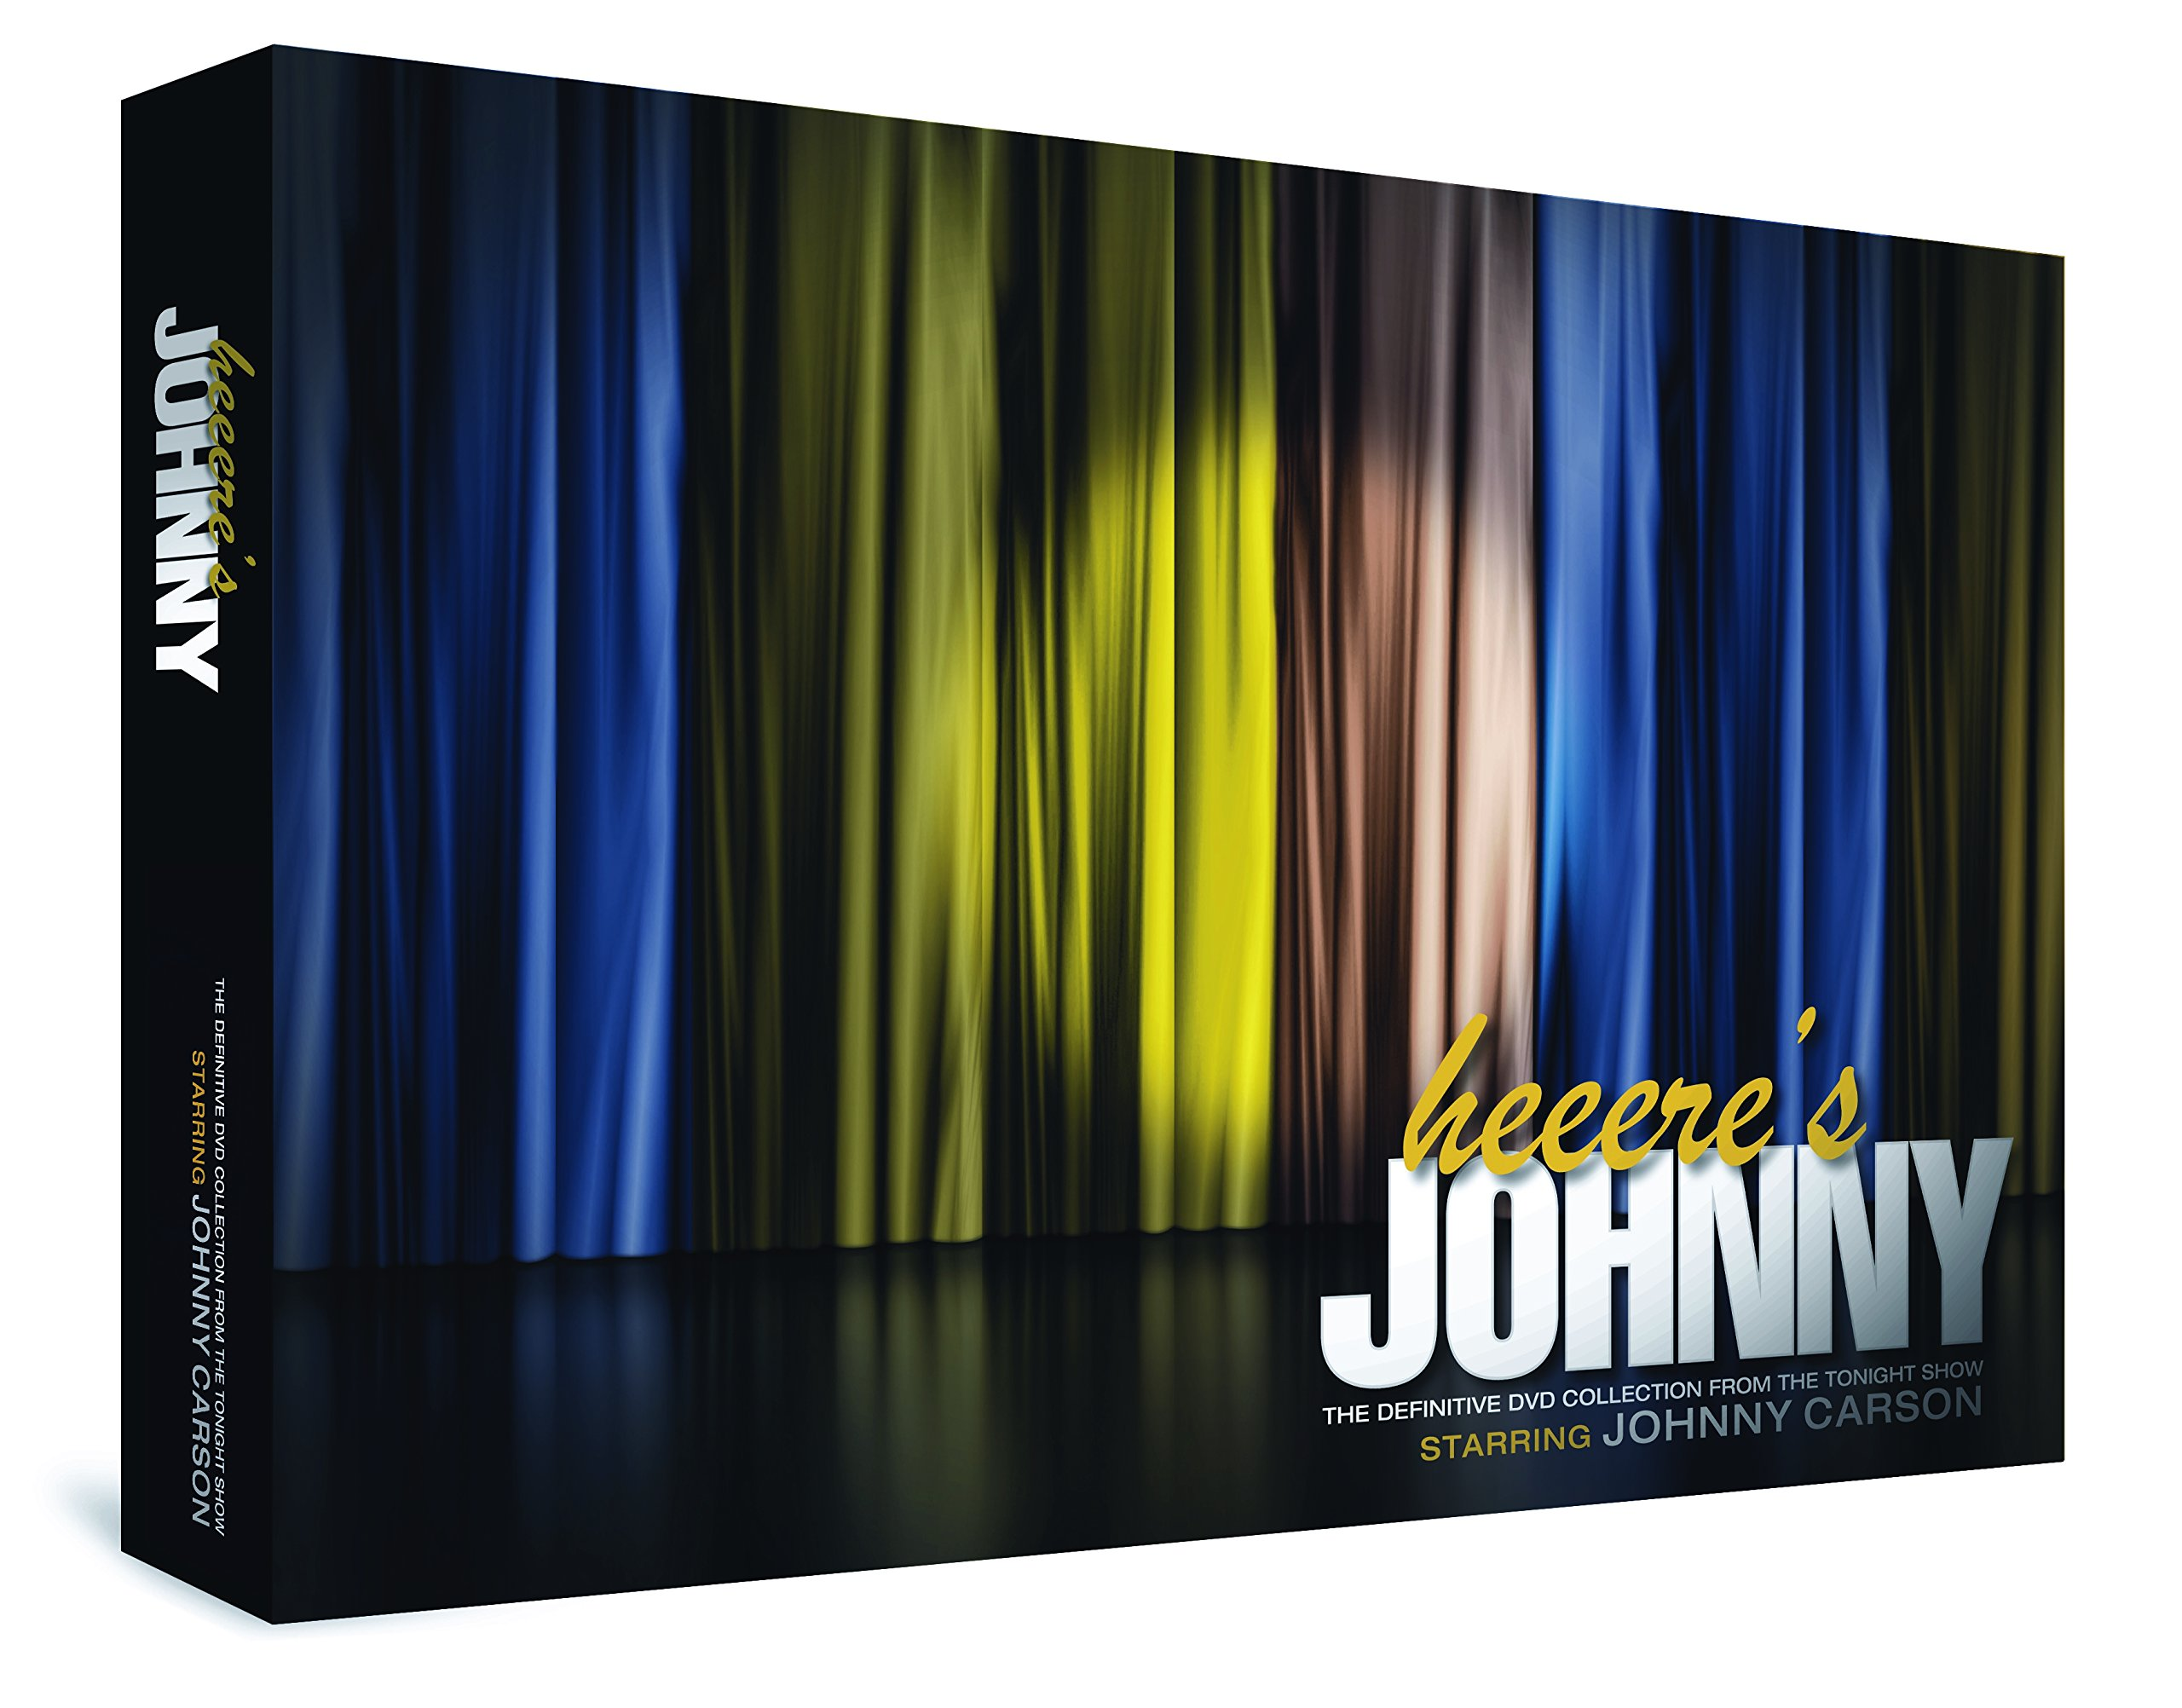 Heeere's Johnny - The Definitive DVD Collection from The Tonight Show starring Johnny Carson by RESPOND2 ENTERTAINMENT